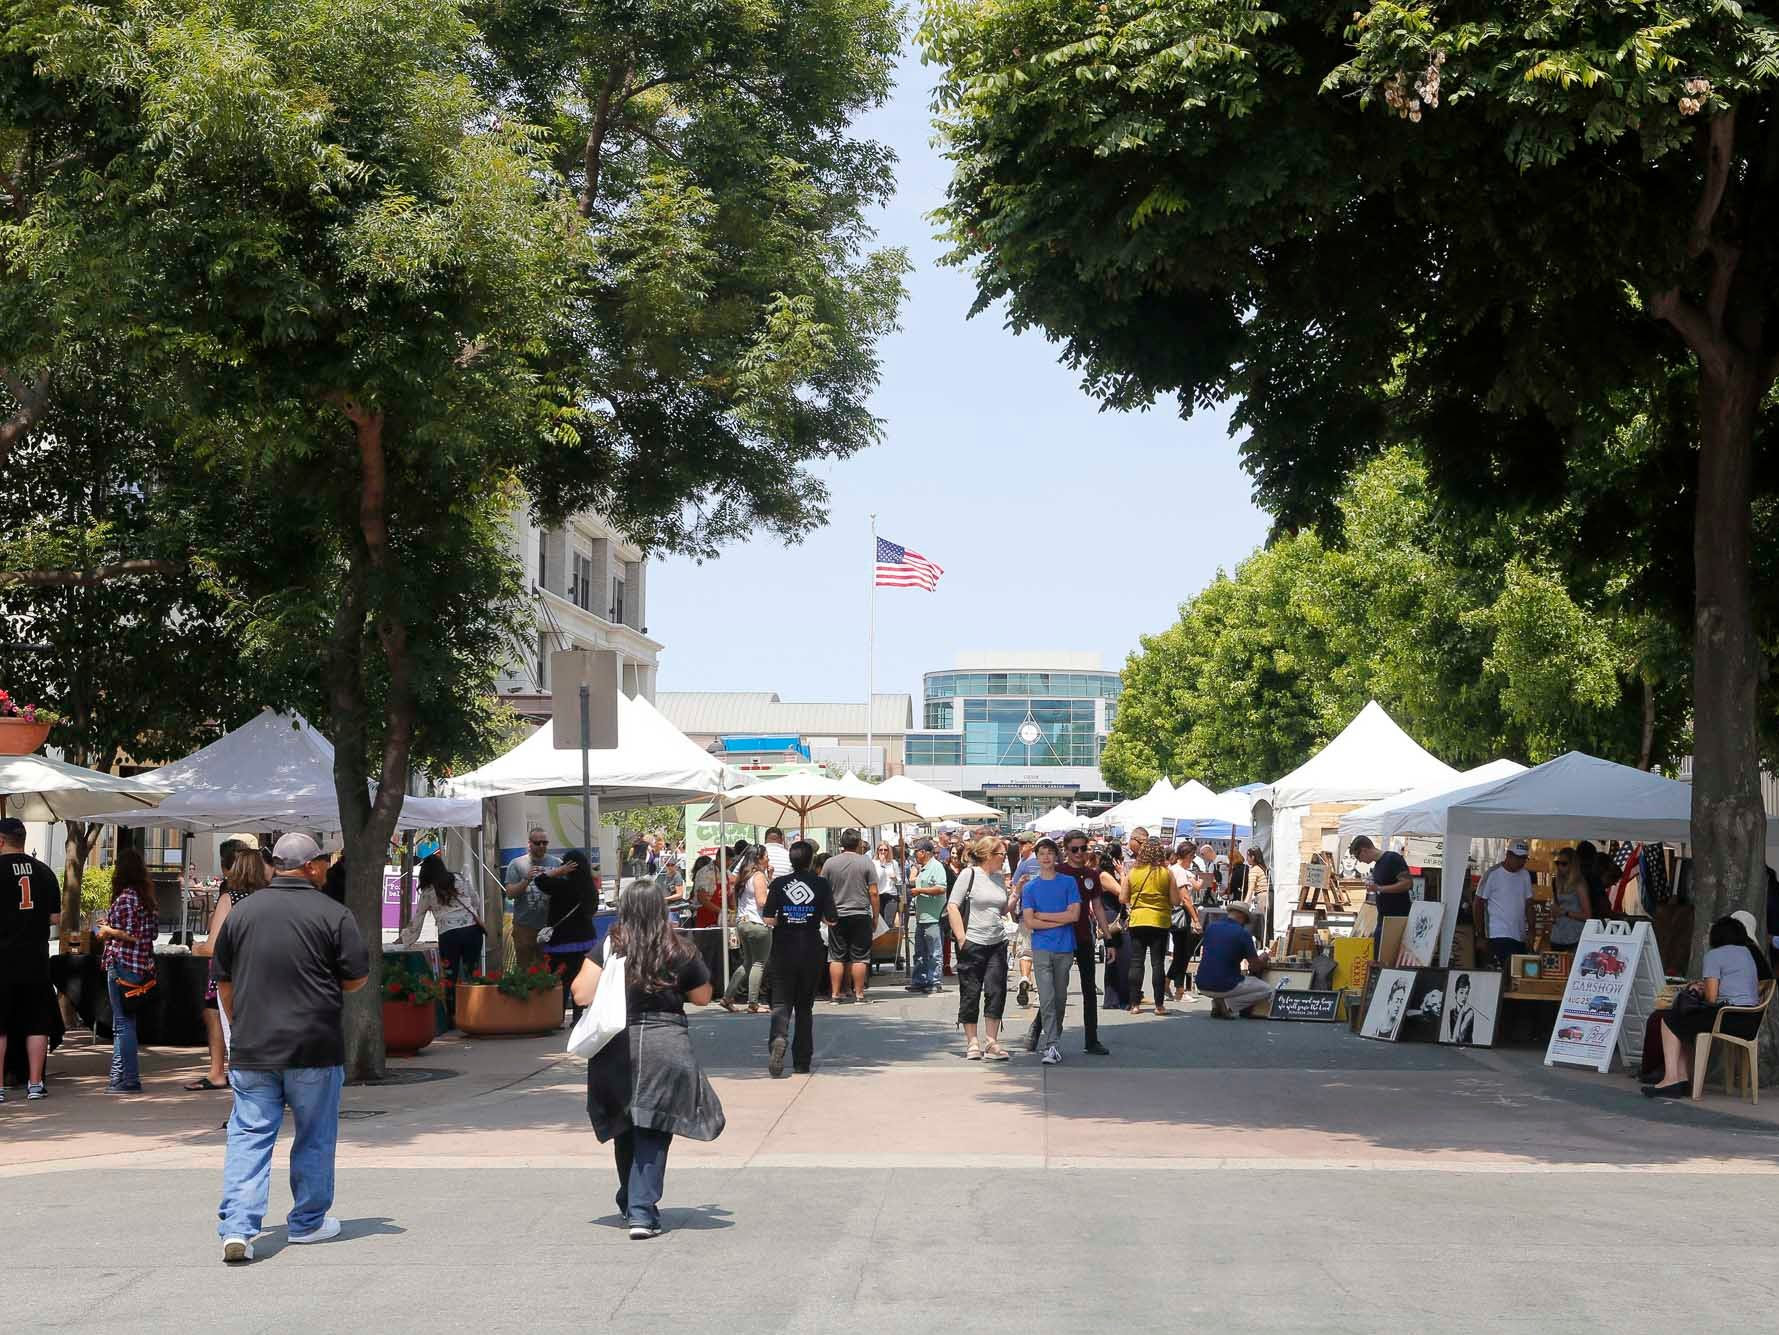 Attendees come and go as they sample food and wine during the 2018 Salinas Valley Food and Wine Festival which takes place on Main Street in Old Town Salinas on Saturday, August 11, 2018.